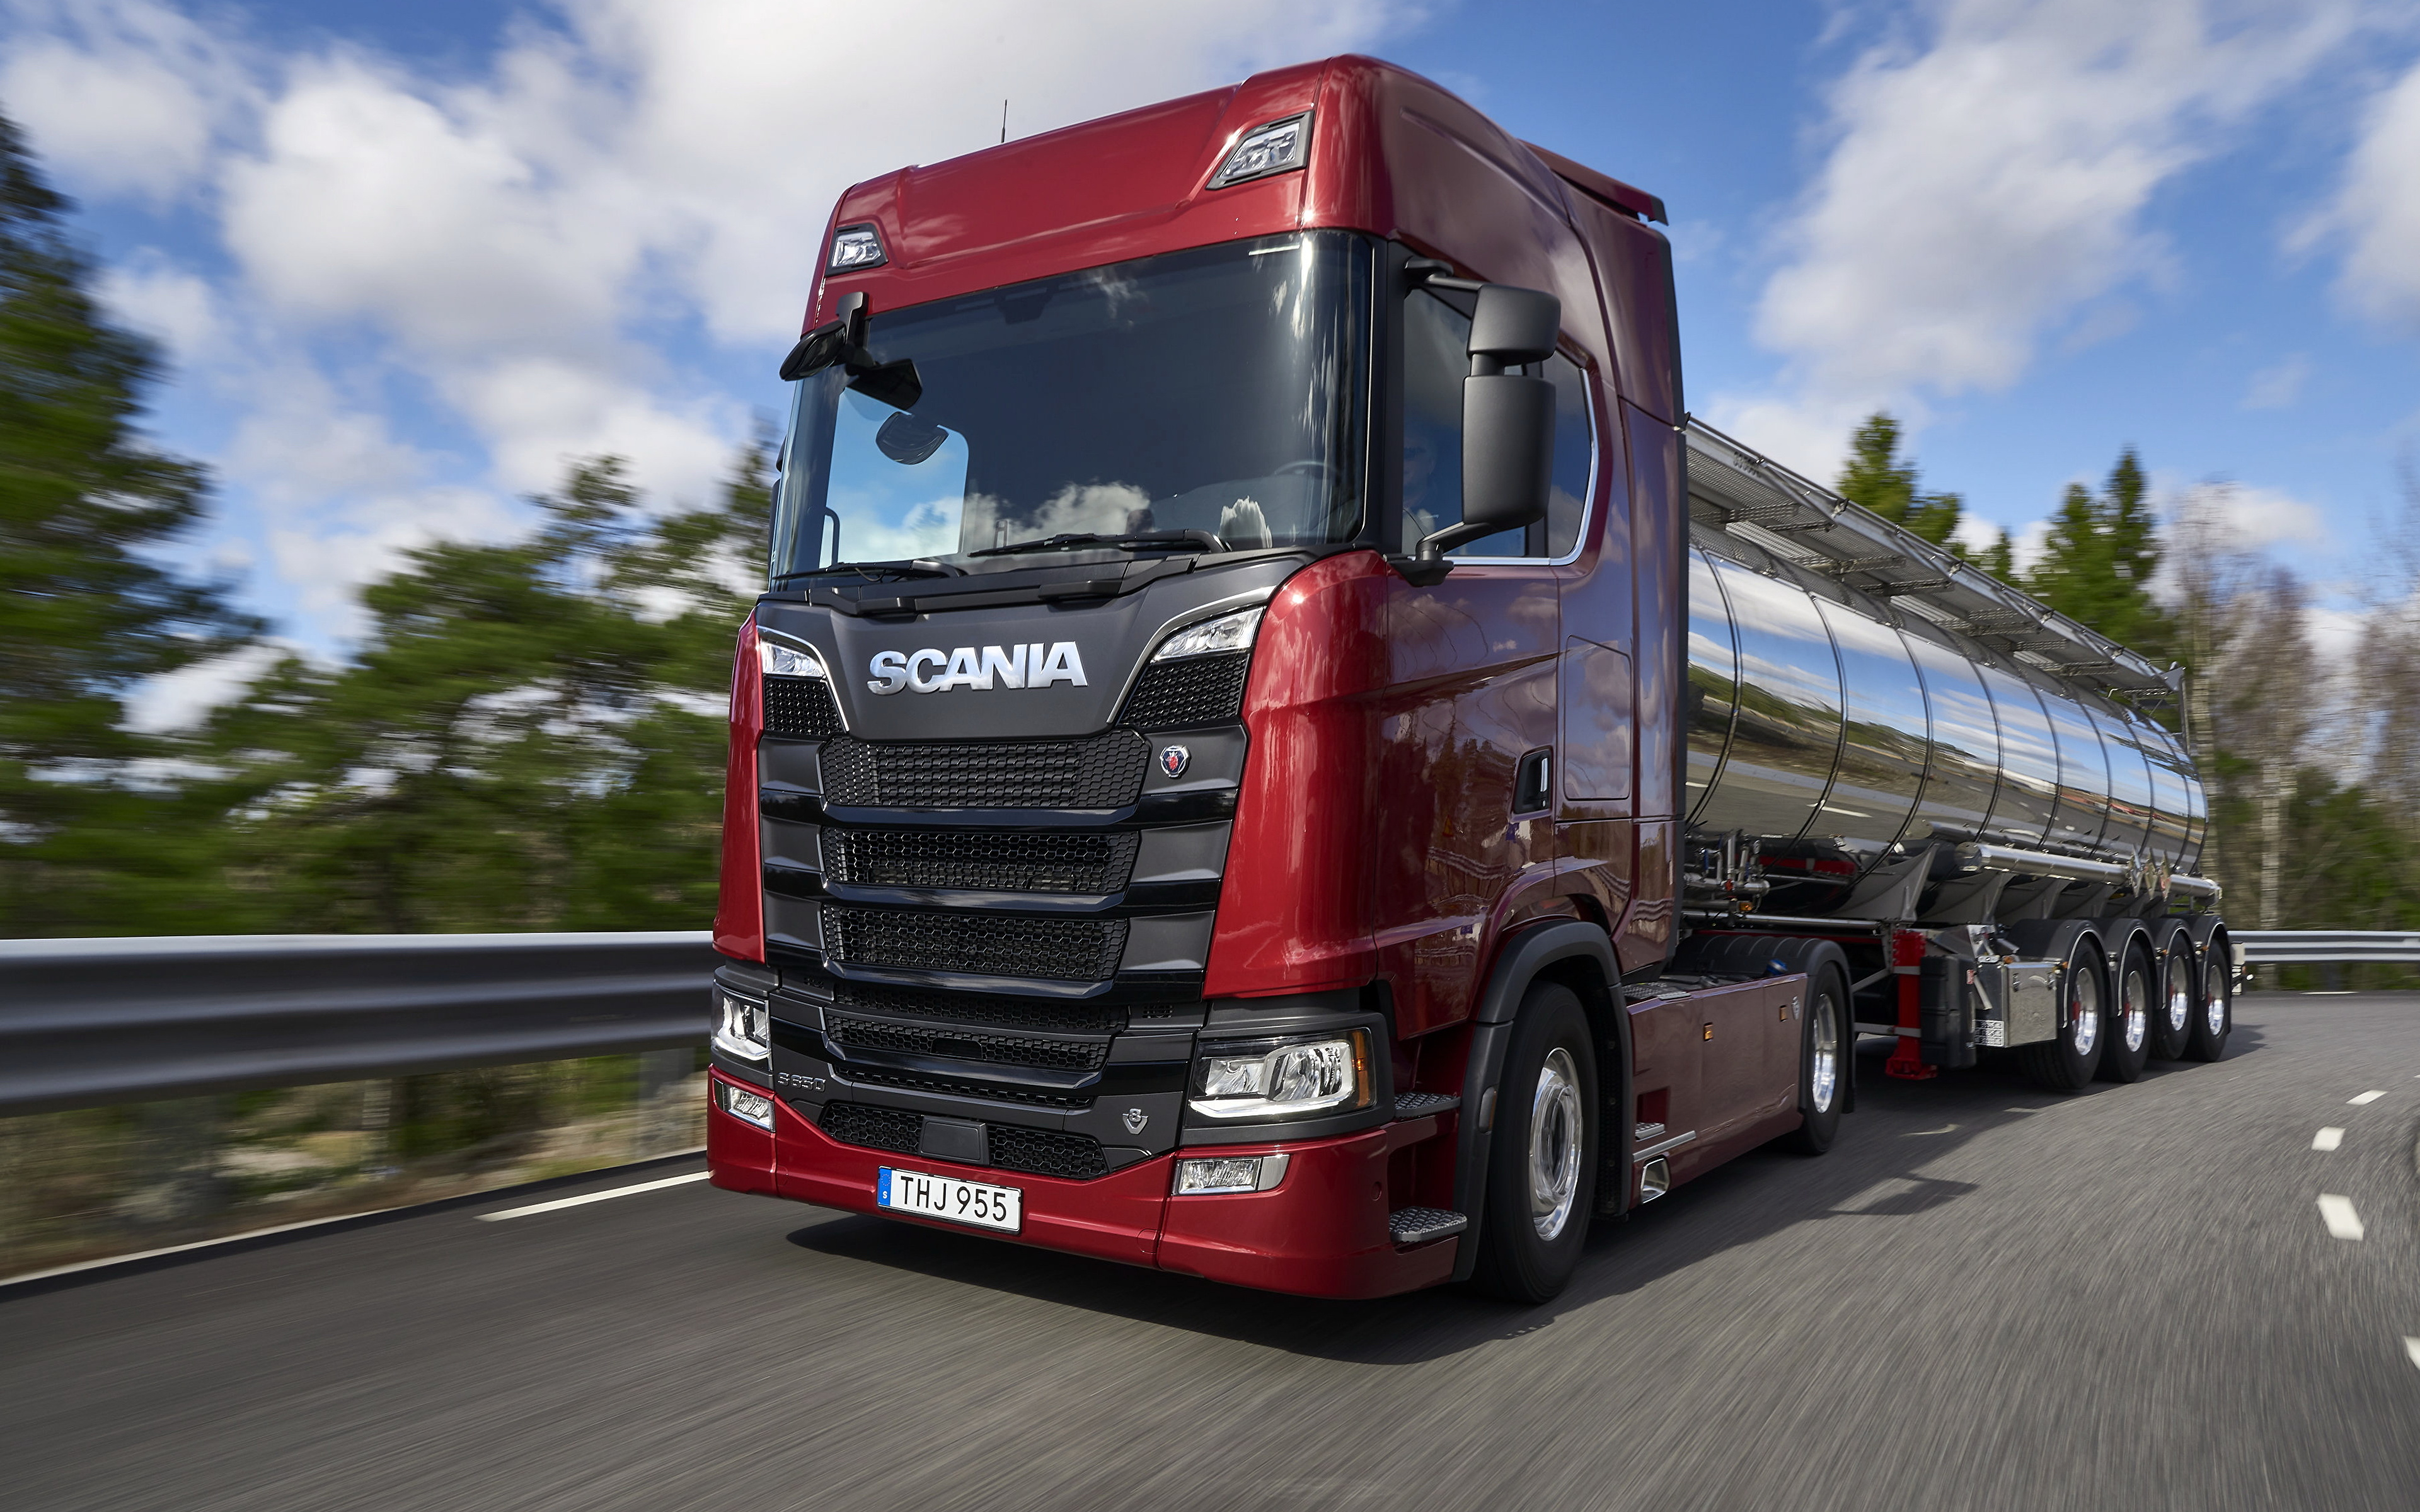 Desktop Wallpapers Trucks Scania S 650 Red moving automobile 3840x2400 lorry Motion riding driving at speed Cars auto